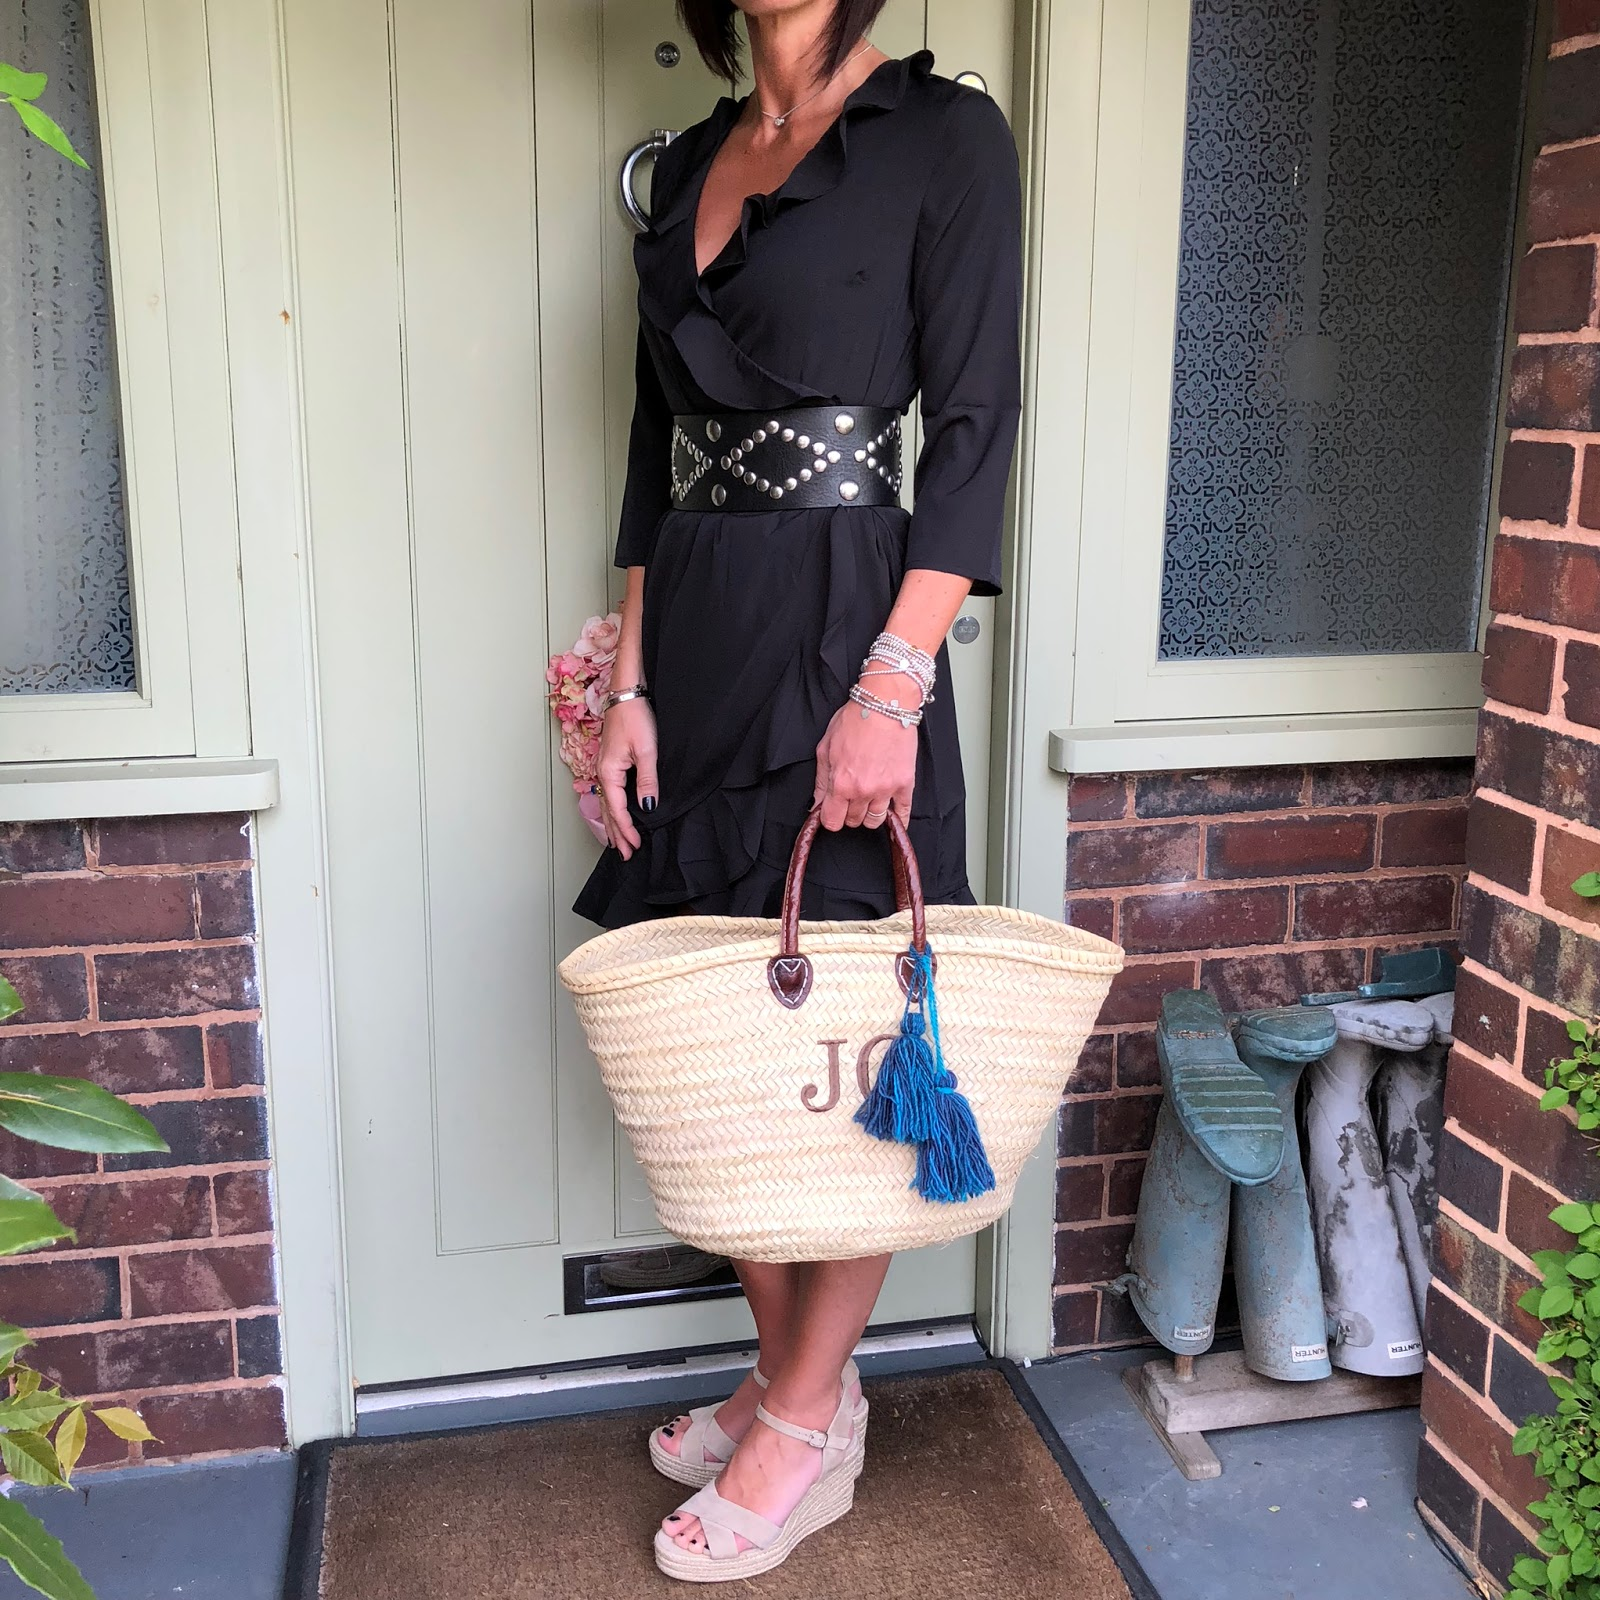 my midlife fashion, tesco f and f clothing vero moda frill trim wrap dres, initially london covent garden medium basket shopper, the white company espadrille wedge shoes, isabel marant studded waist belt, marks and spencer panama hat